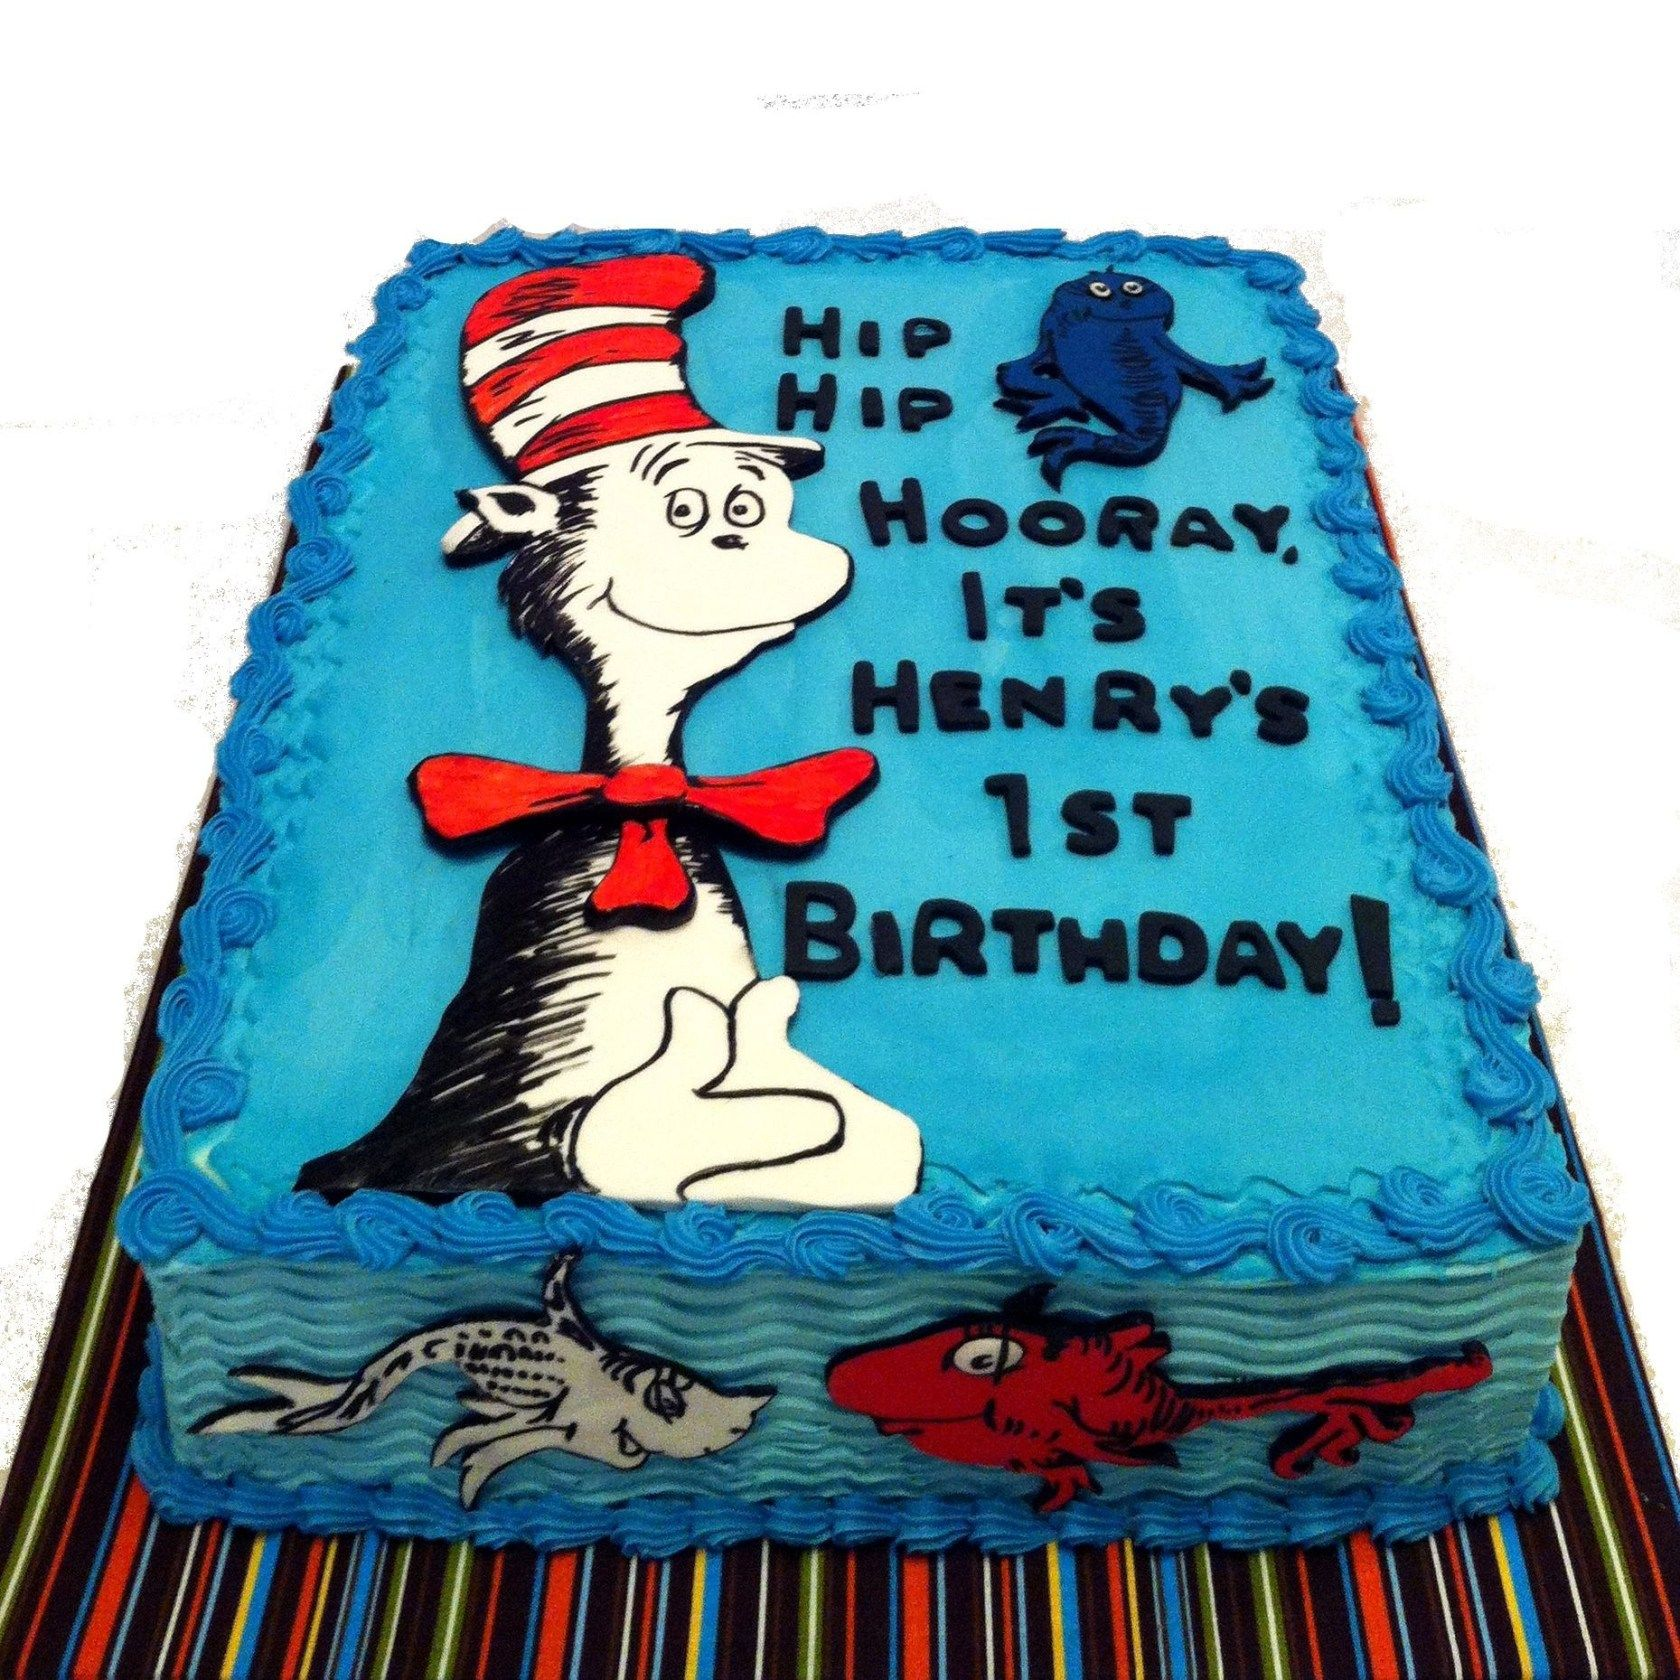 Dr Seuss Birthday Cake May 2013 Dr Seuss Cat In The Hat And One